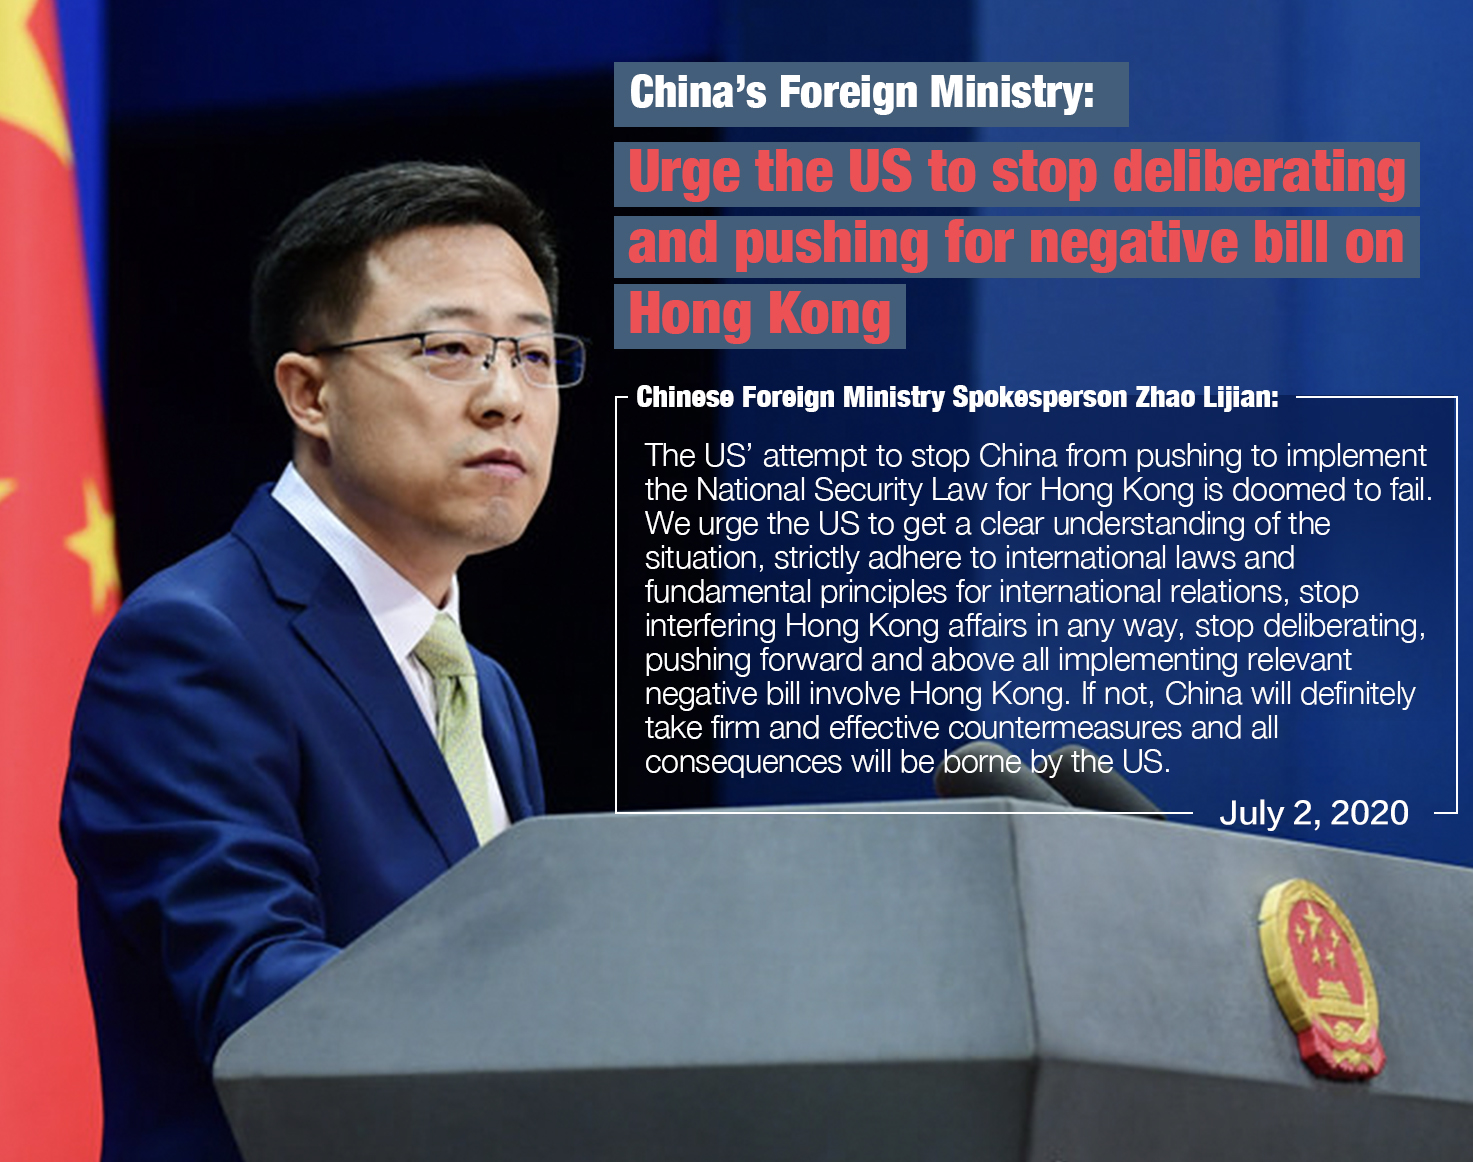 China's Foreign Ministry urges US to stop deliberating, pushing for negative bill on HK